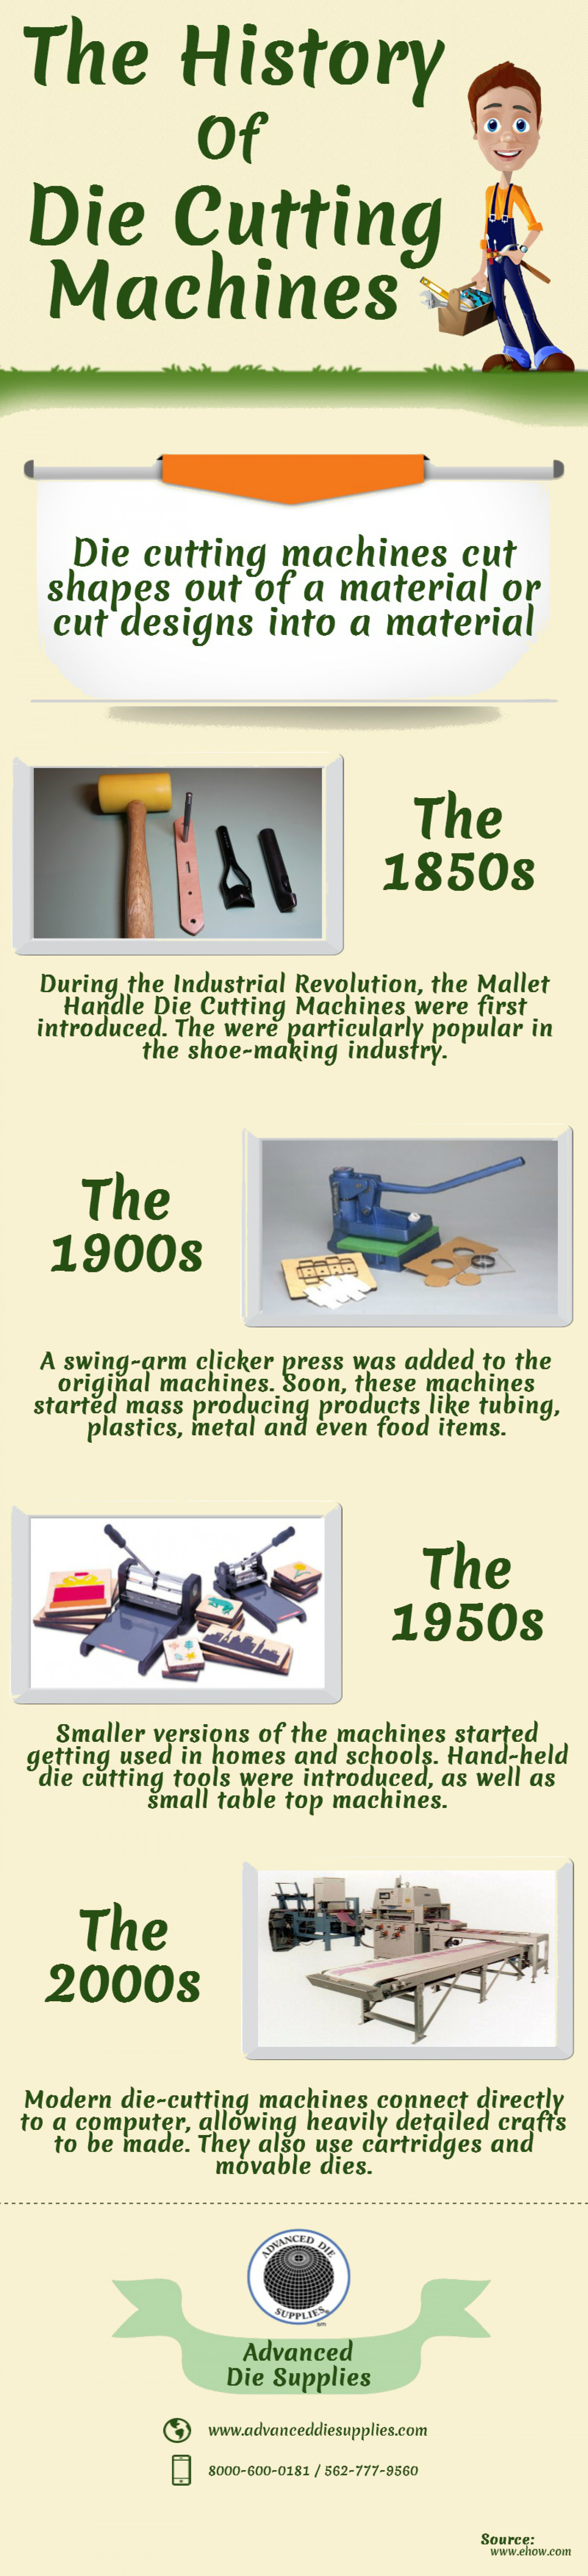 History of Die Cutting Machines Infographic